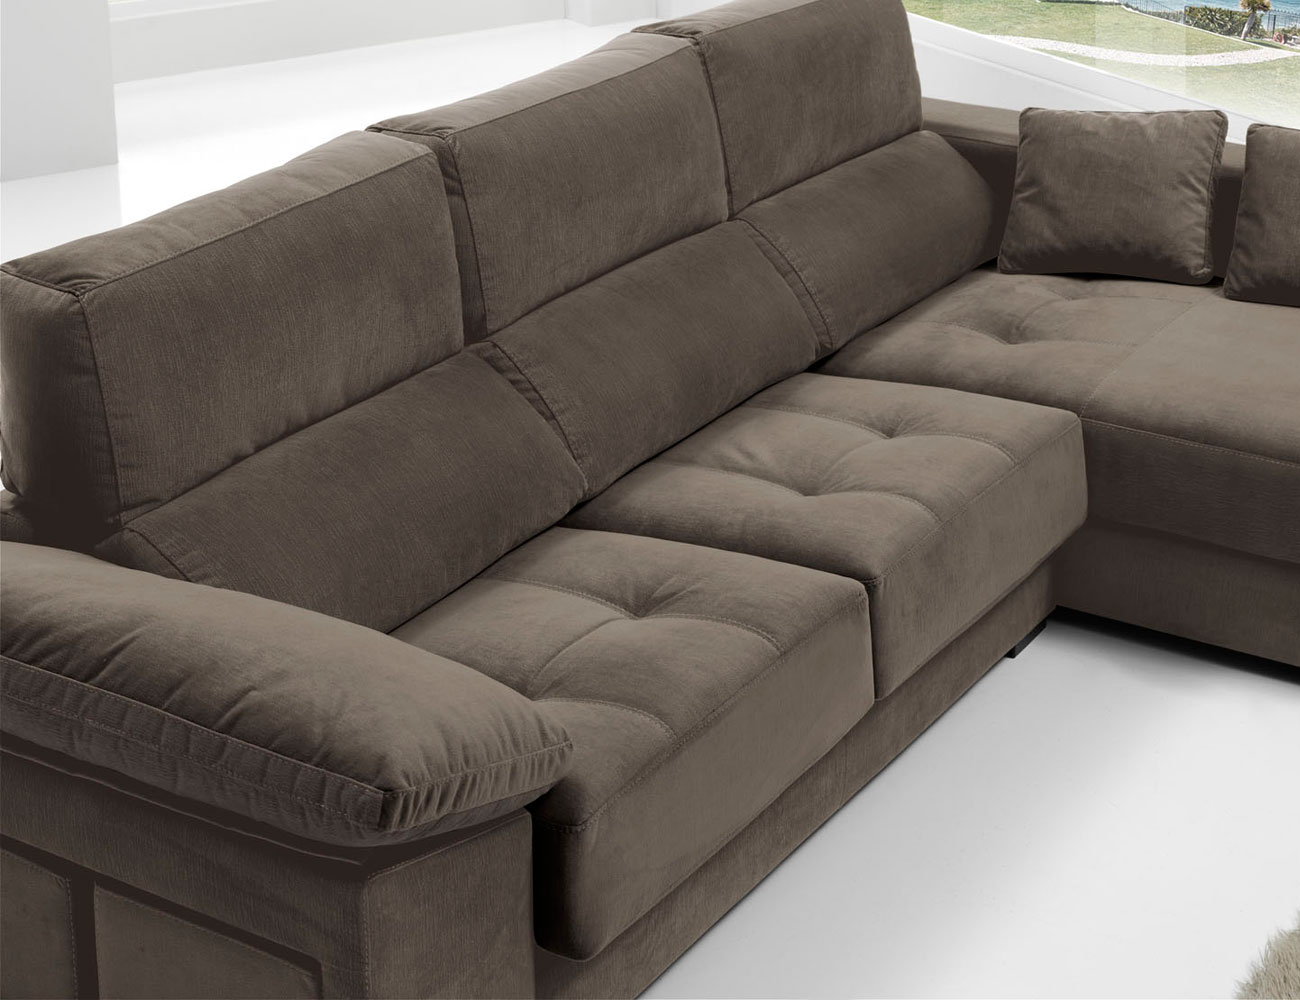 Sofa chaiselongue anti manchas bering pouf 265